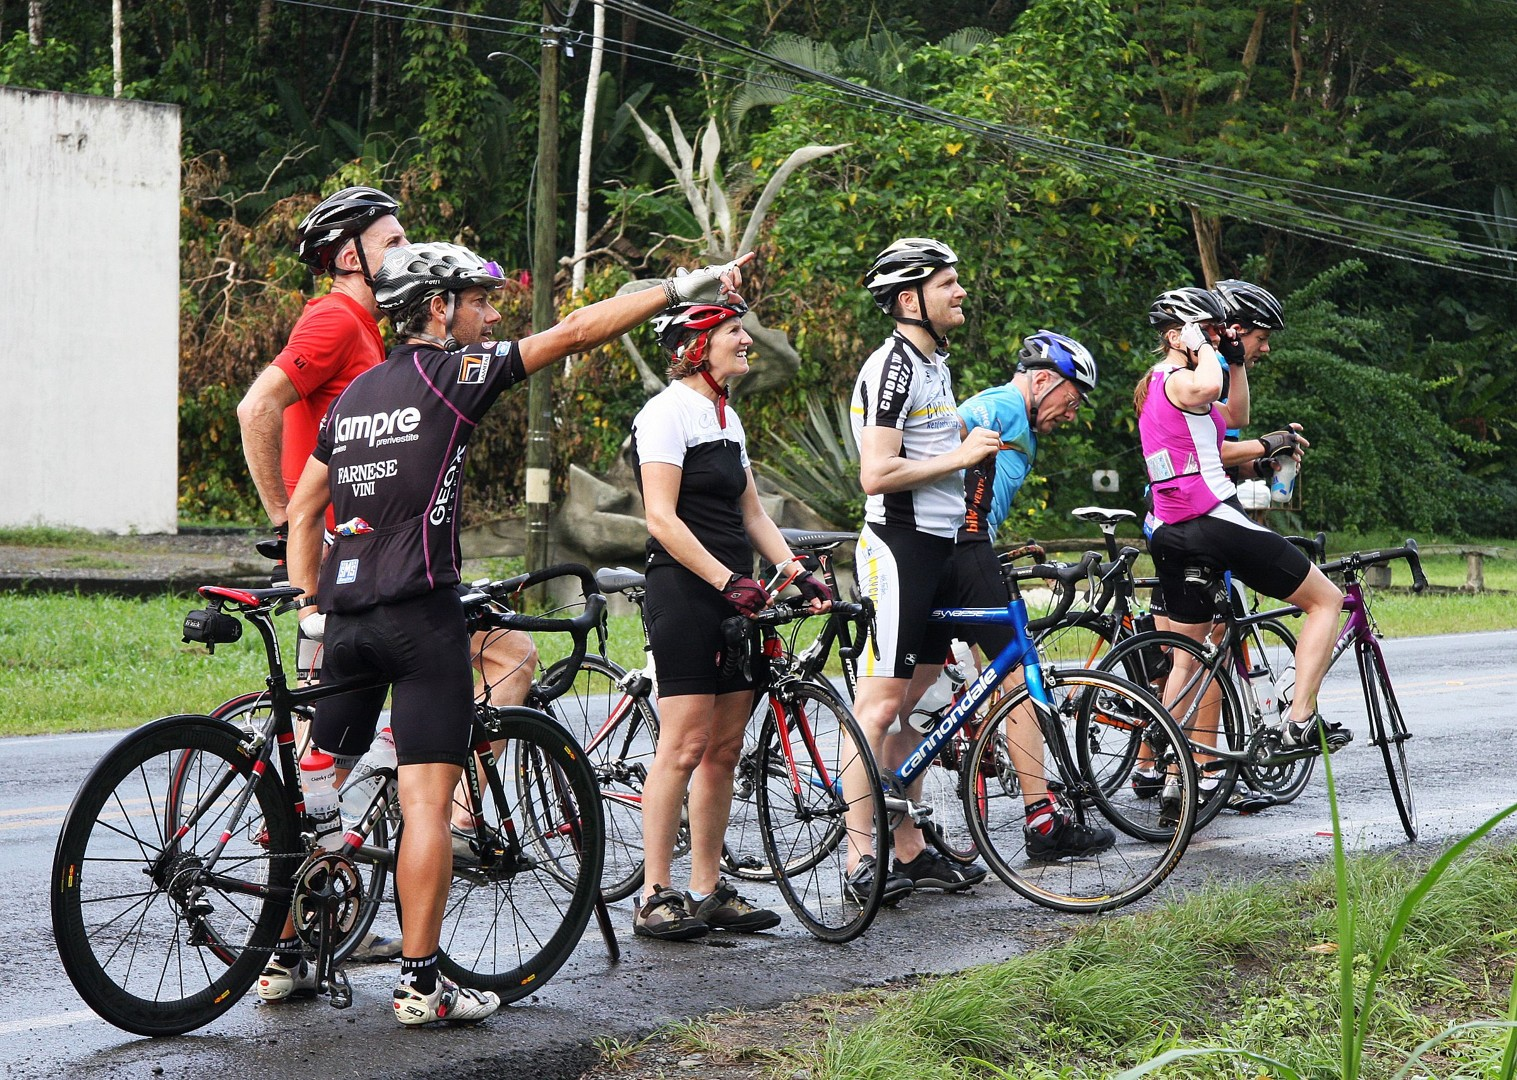 saddle-skedaddle-guided-road-cycling-holiday-ruta-de-los-volcanes-costa-rica.jpg - Costa Rica - Ruta de los Volcanes - Guided Road Cycling Holiday - Road Cycling